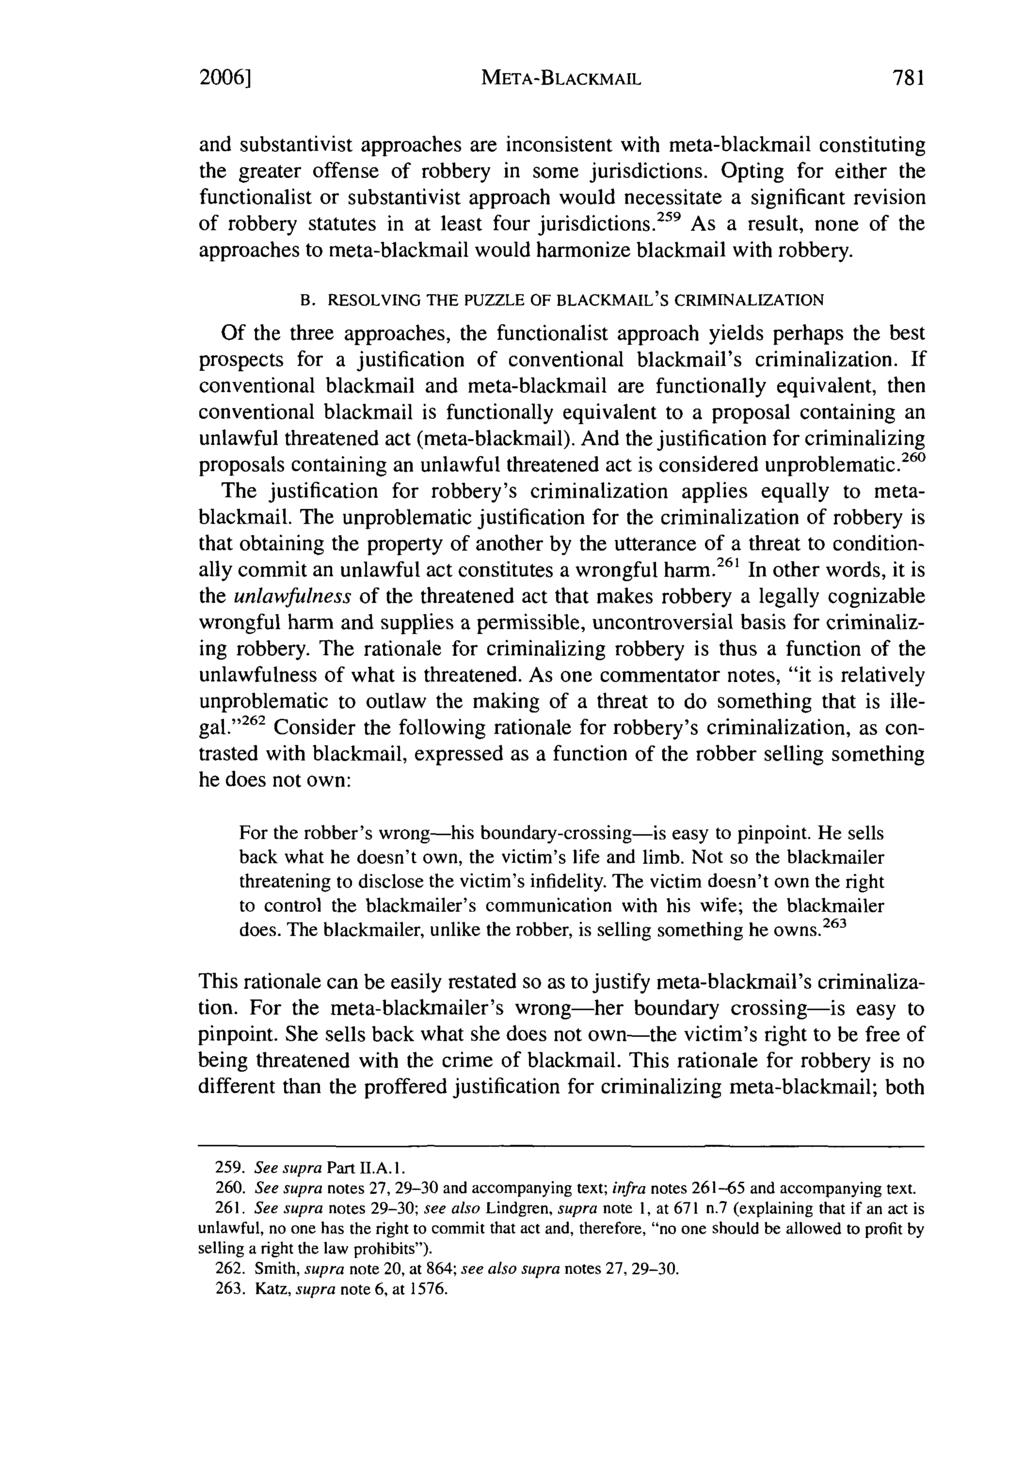 2006] META-BLACKMAIL and substantivist approaches are inconsistent with meta-blackmail constituting the greater offense of robbery in some jurisdictions.